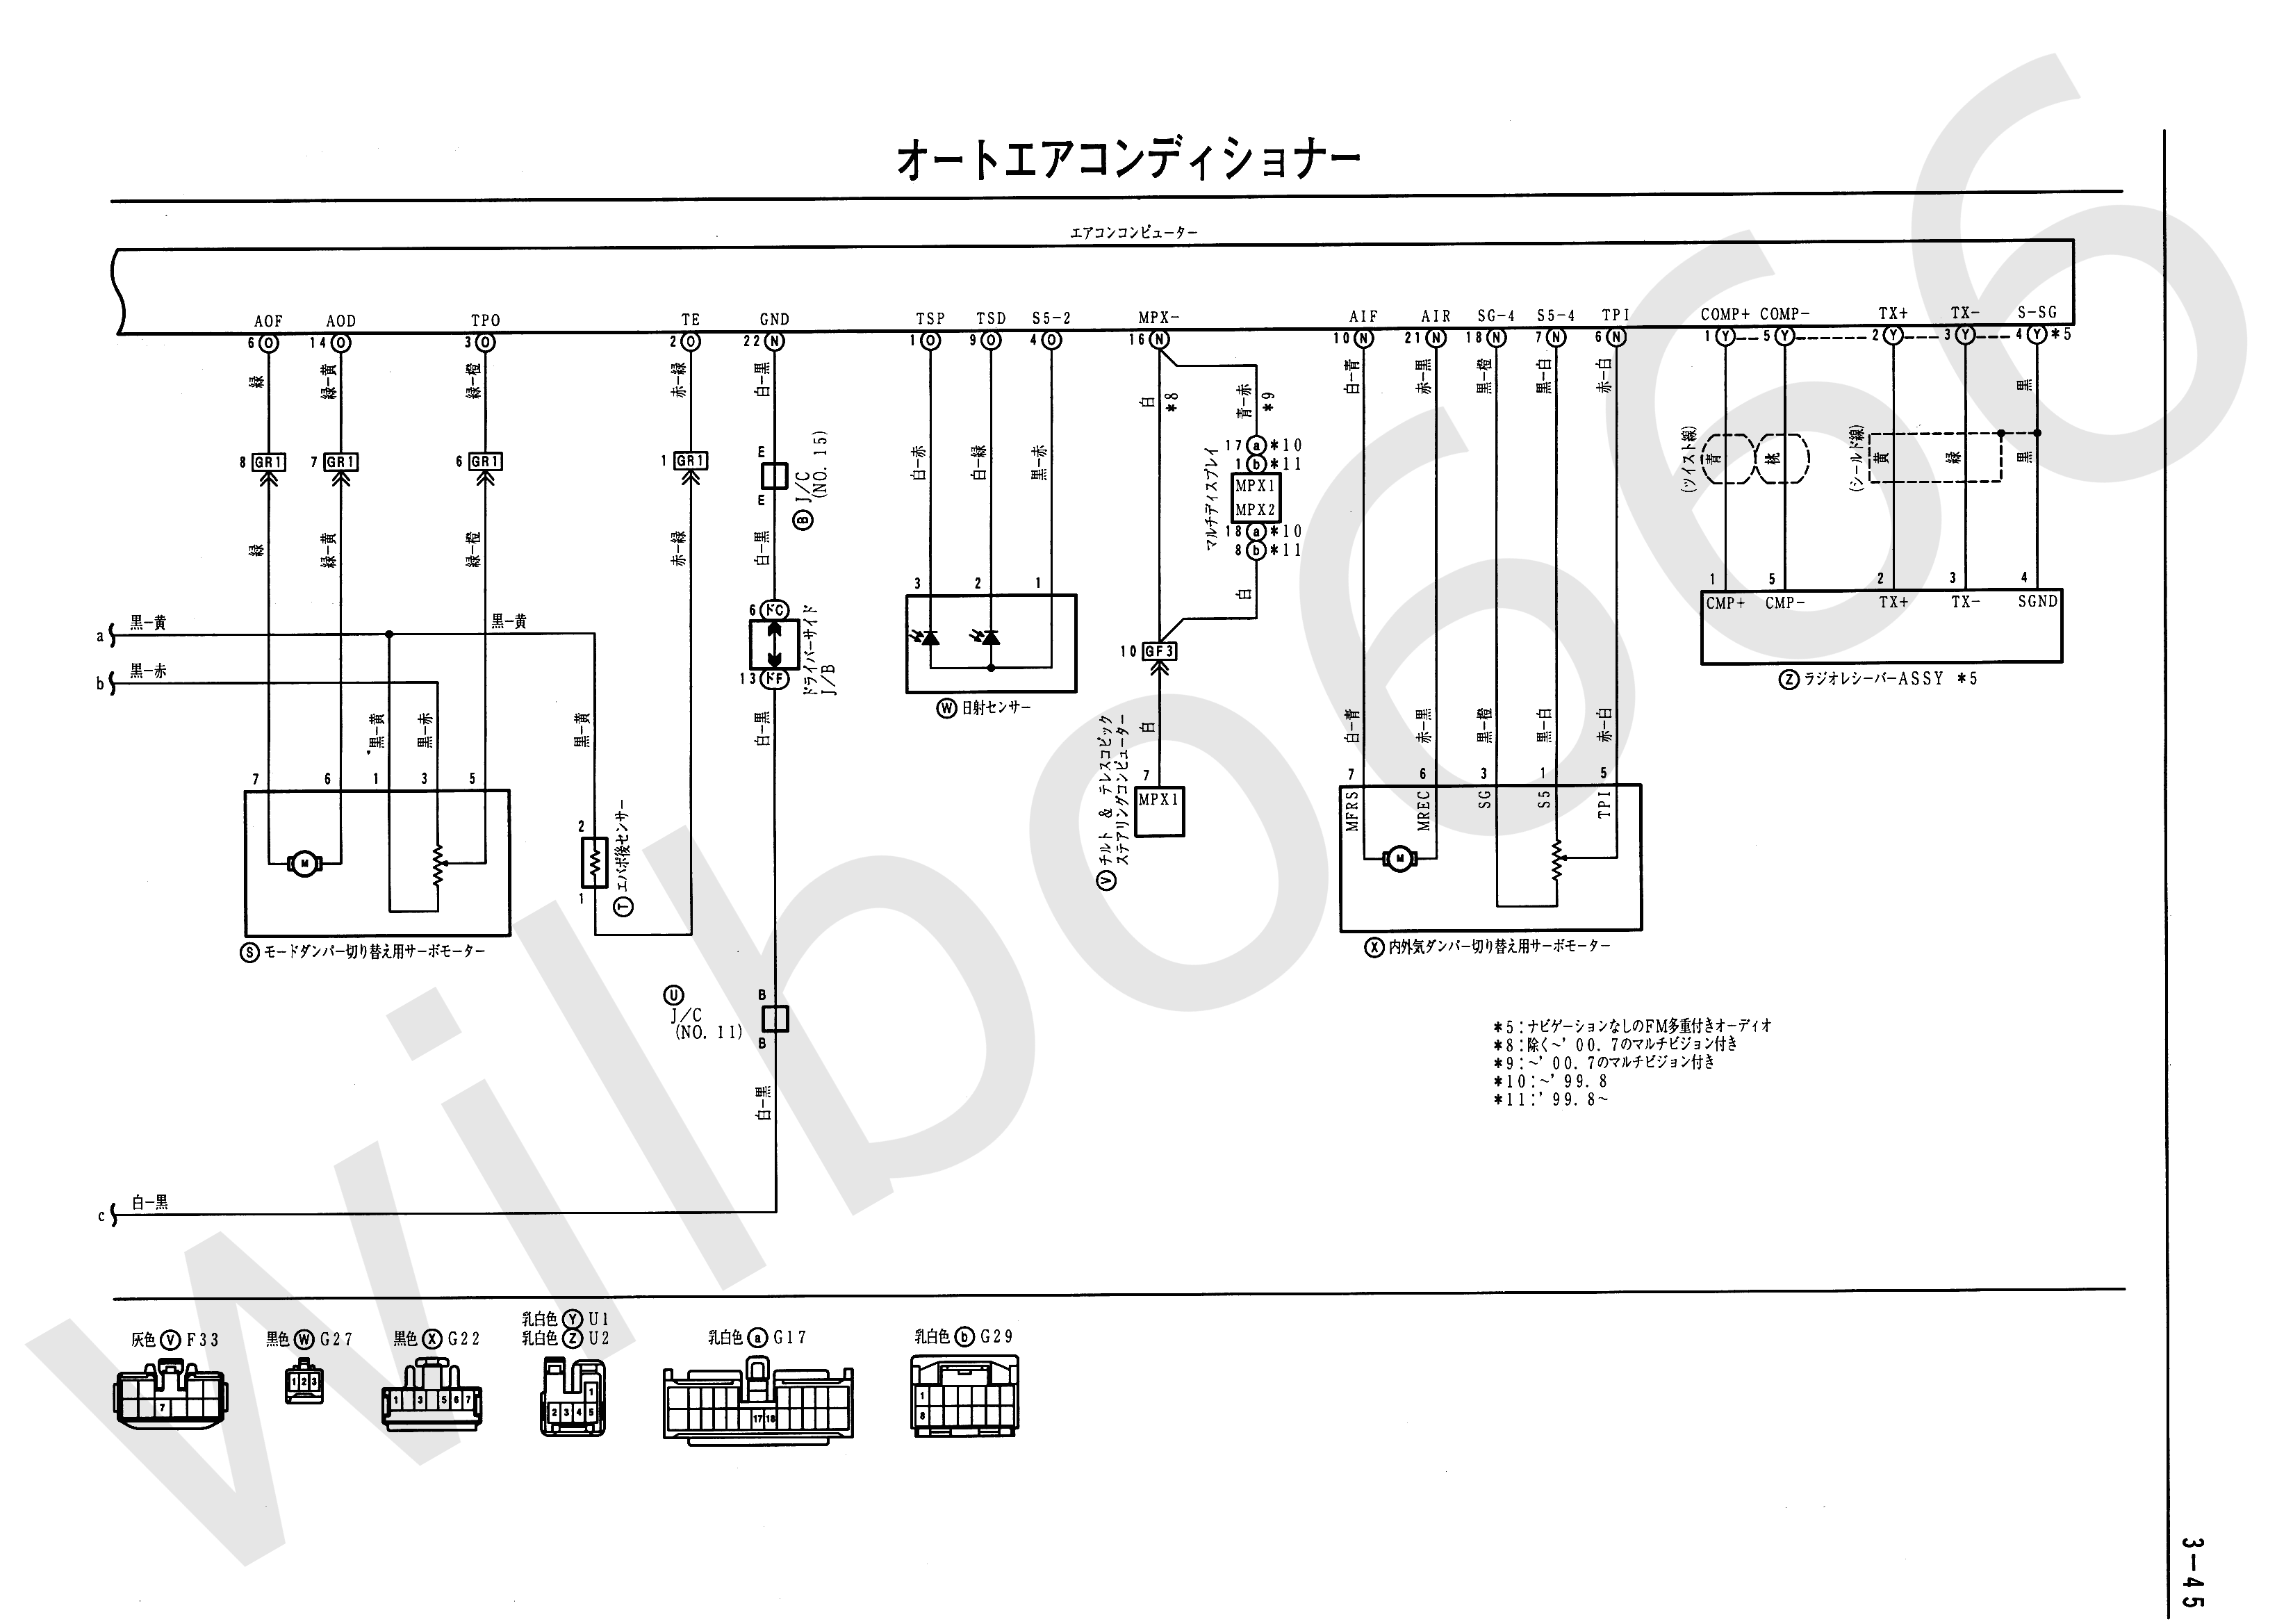 JZS161 Electrical Wiring Diagram 6748505 3 45?resize\\=3300%2C2337 rough house 50cc scooter wiring diagram kymco scooter parts 50cc scooter wiring diagram at bayanpartner.co